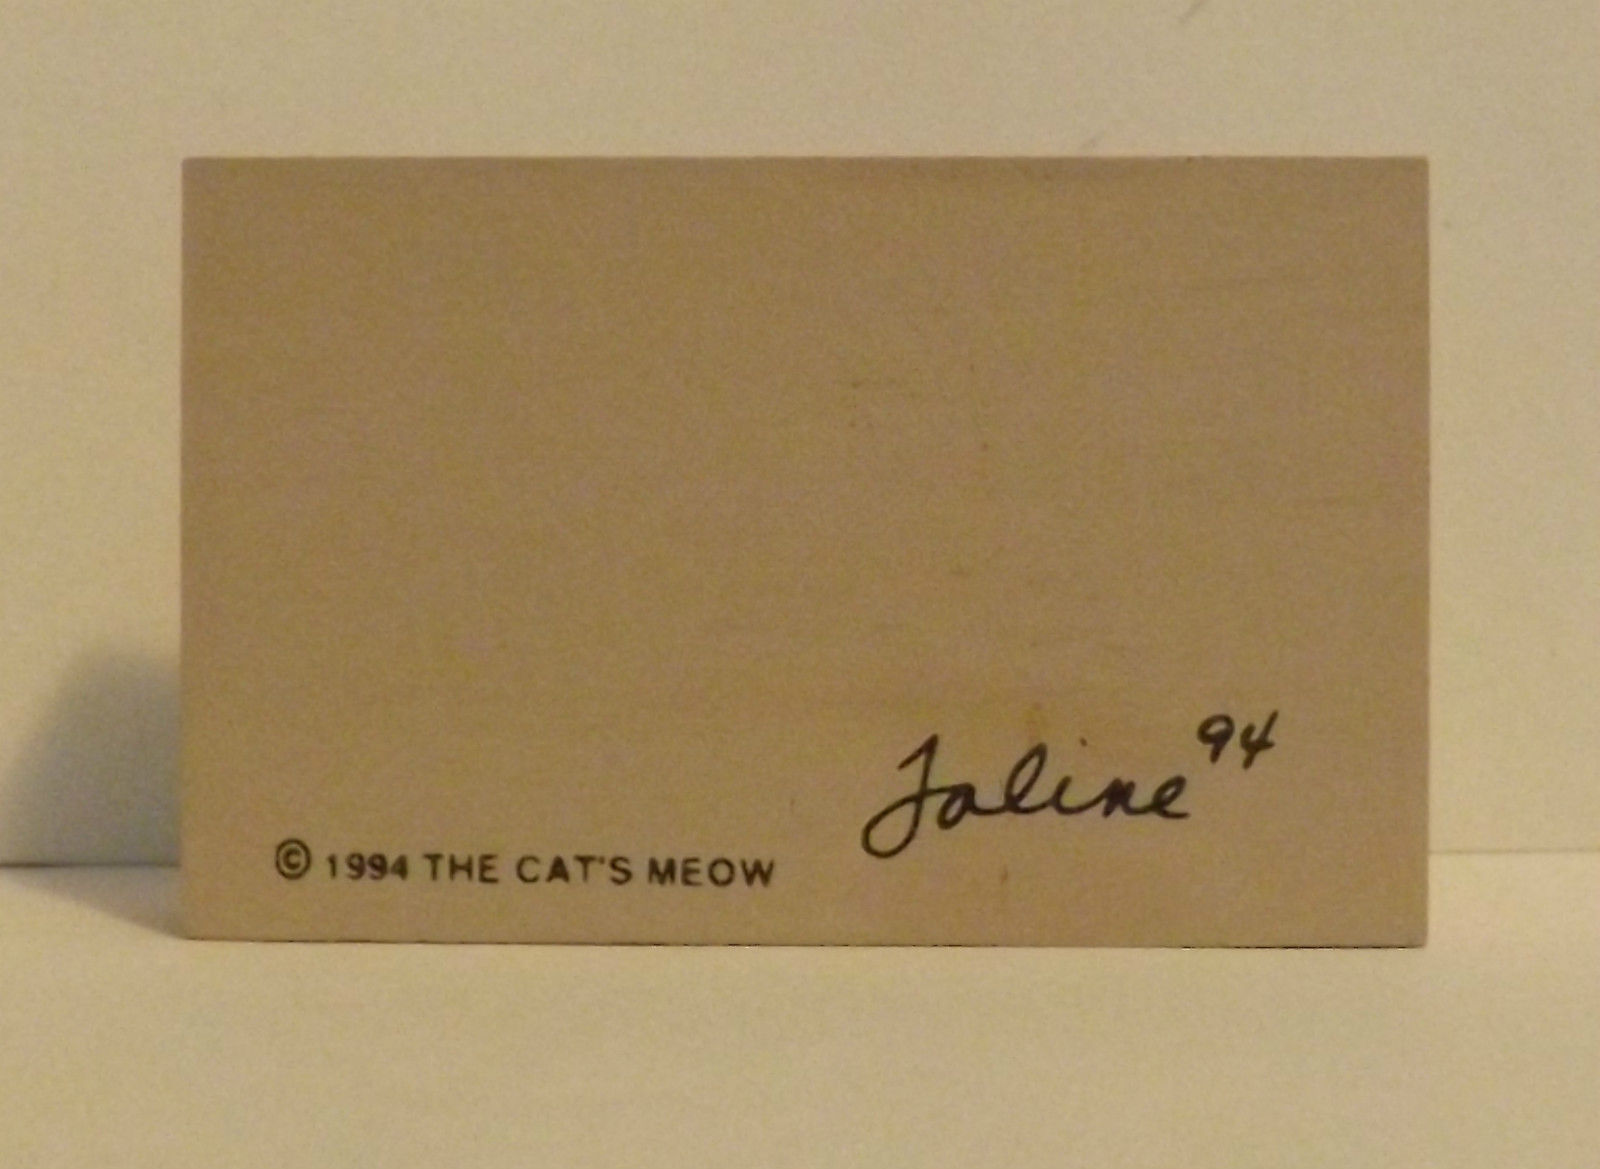 The Cats Meow Village Accessory Colonial People 1994 image 2